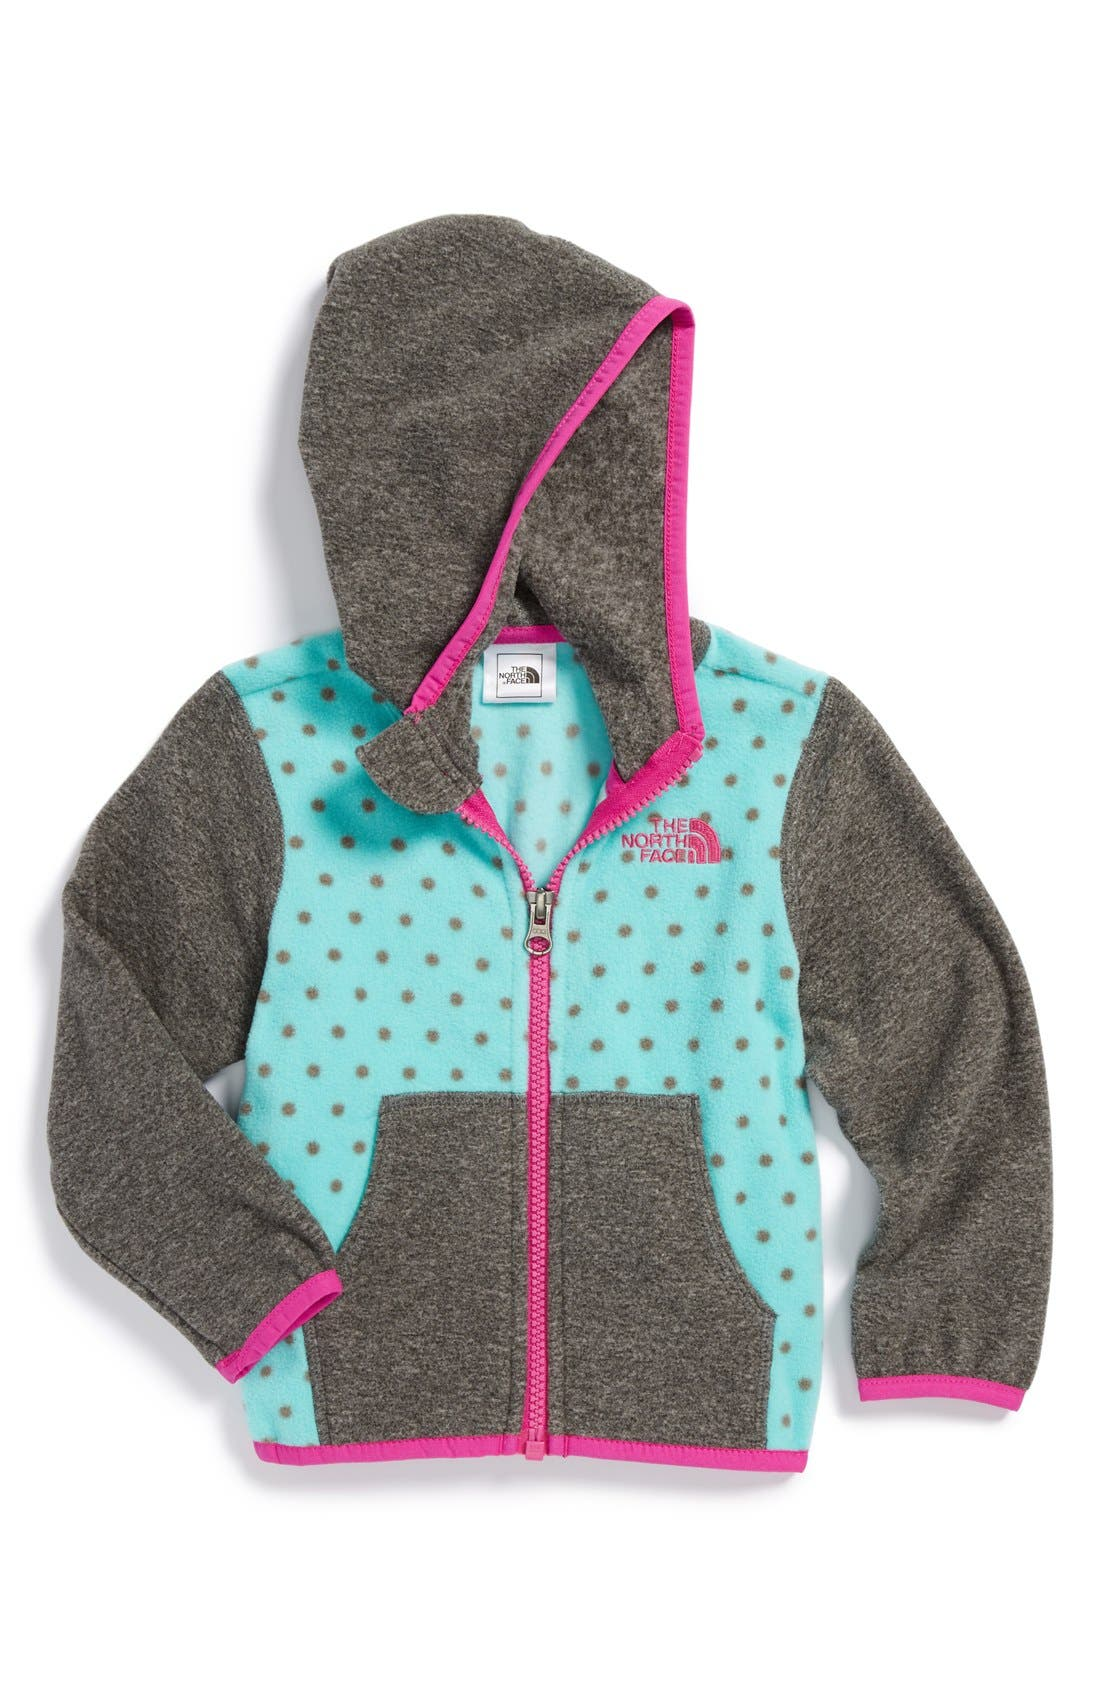 Alternate Image 1 Selected - The North Face 'Glacier' Full Zip Fleece Hoodie (Baby Girls)